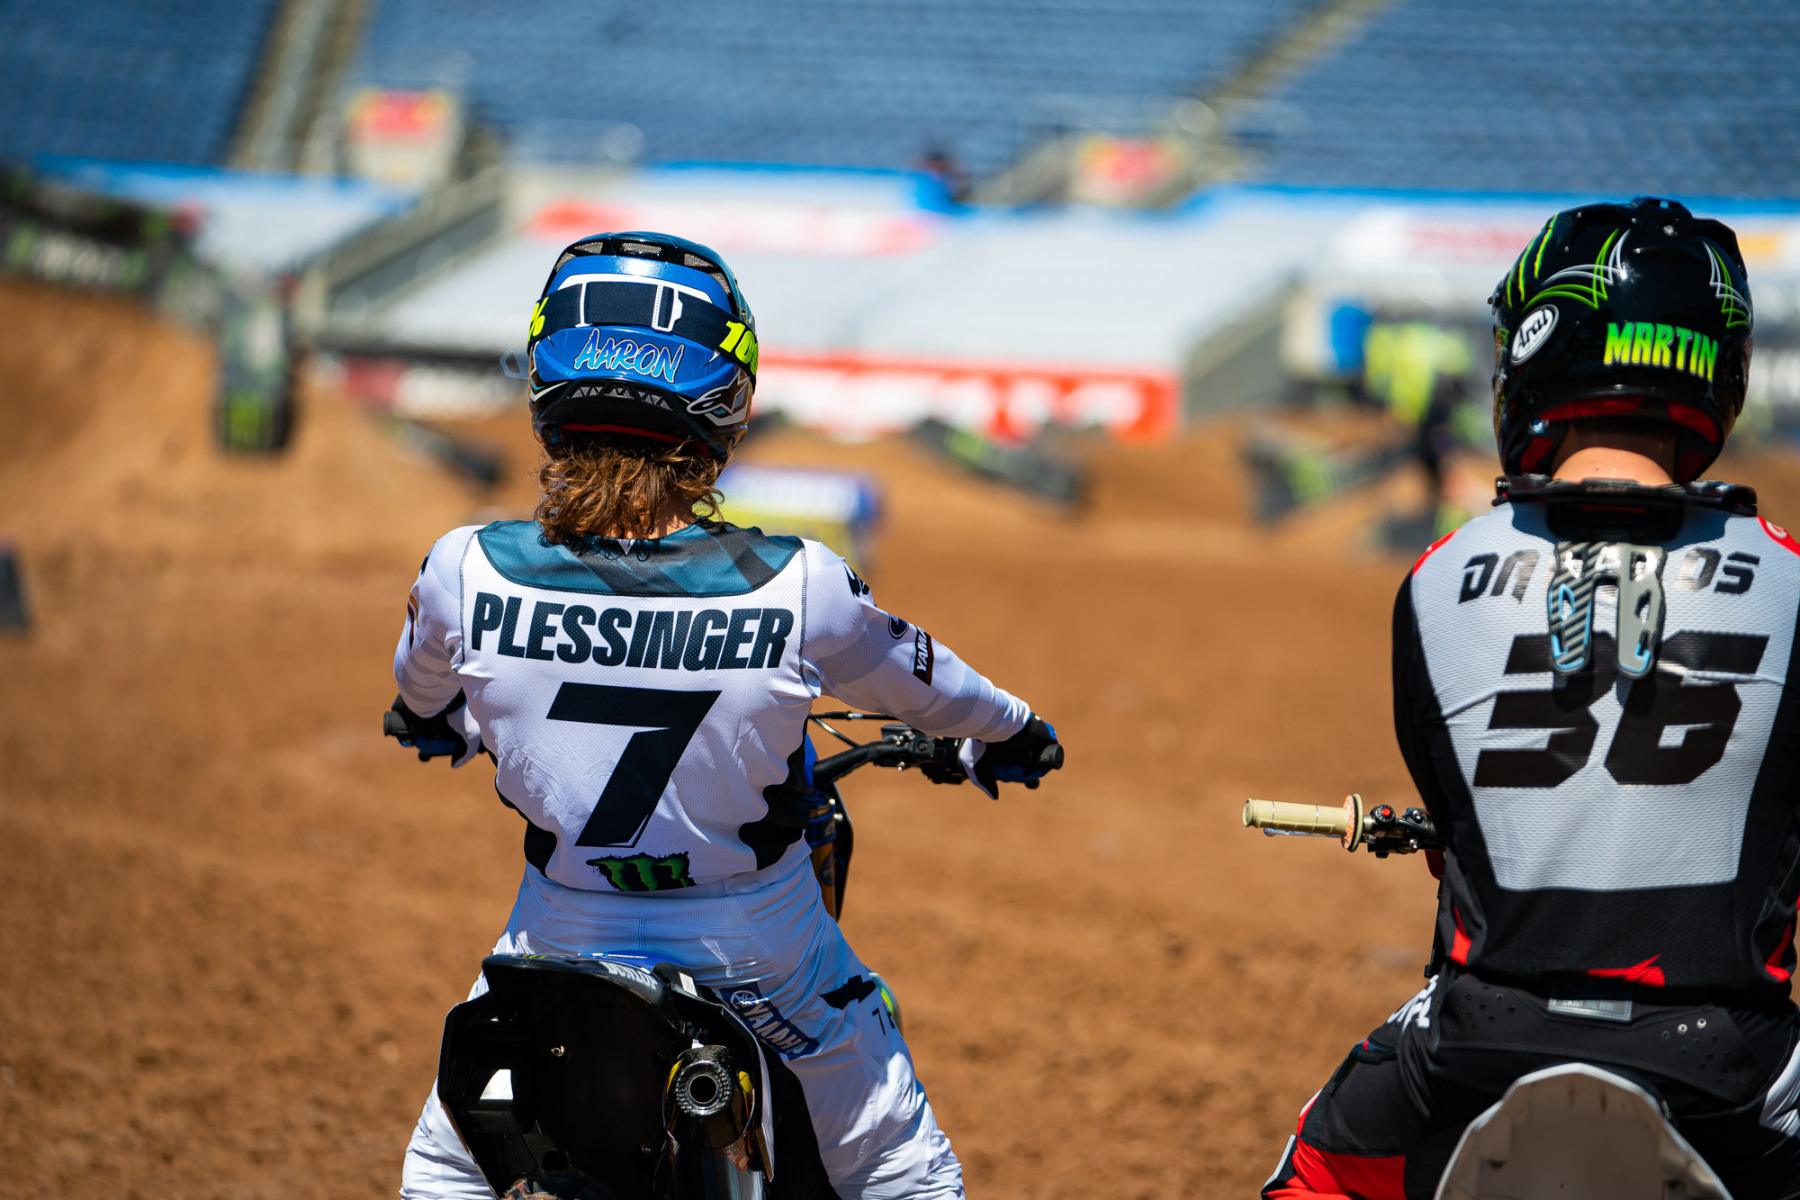 2021-ORLANDO-TWO-SUPERCROSS_KICKSTART_1499